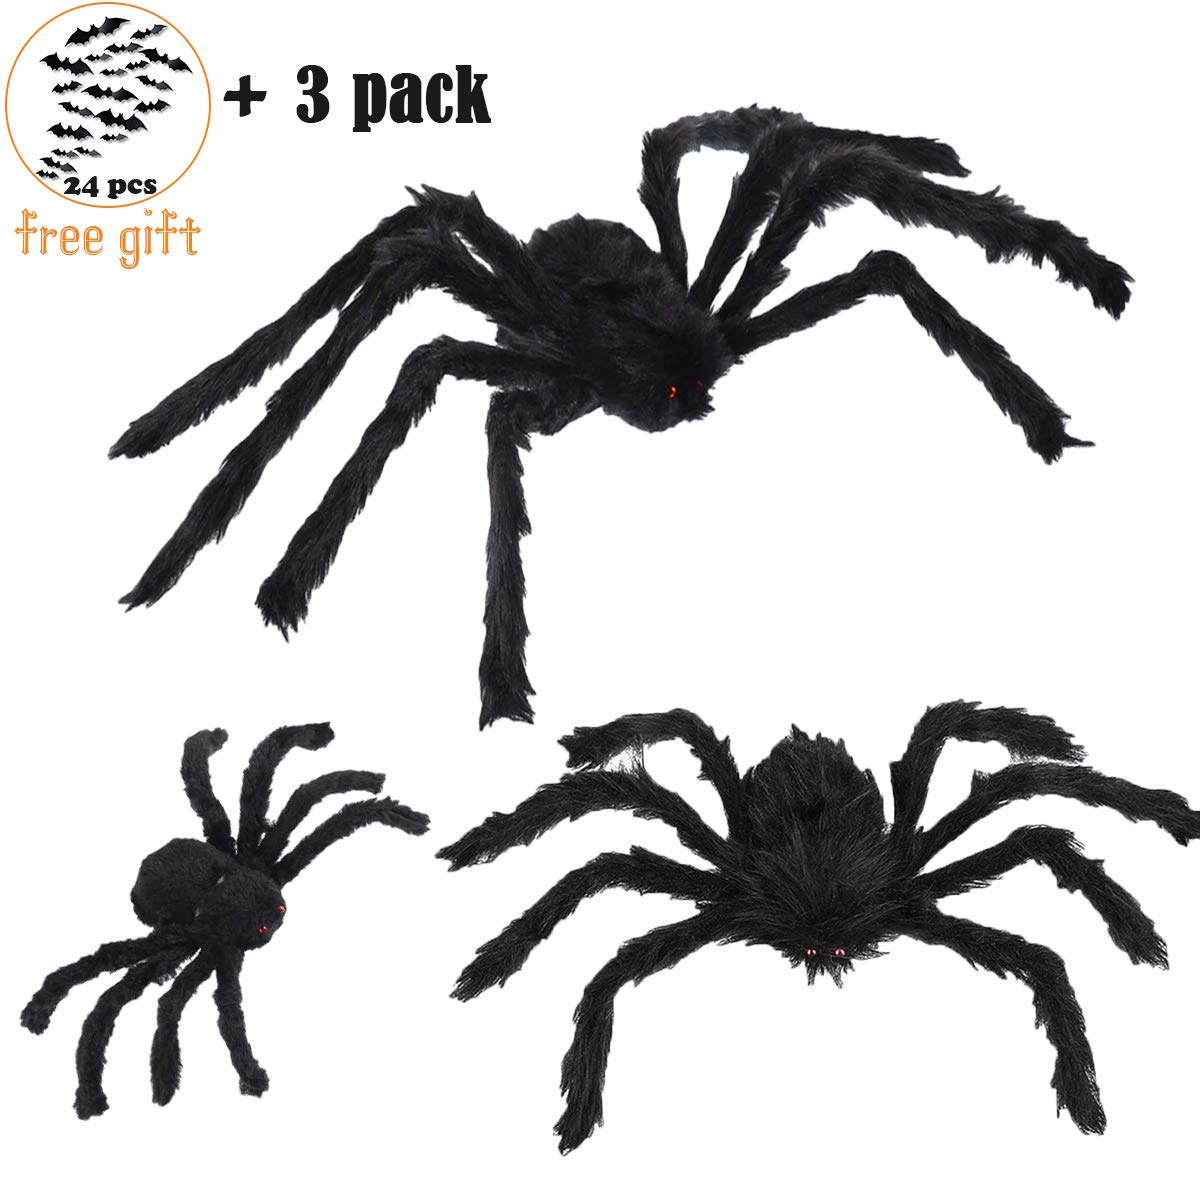 3 Pack Halloween Giant Spider Set, Large Fake Spider Realistic Hairy Spiders Halloween Indoor and Outdoor Yard Decoration, Creepy Black Spiders Comes With 24pcs Small Size Halloween Bat Kit for Gift